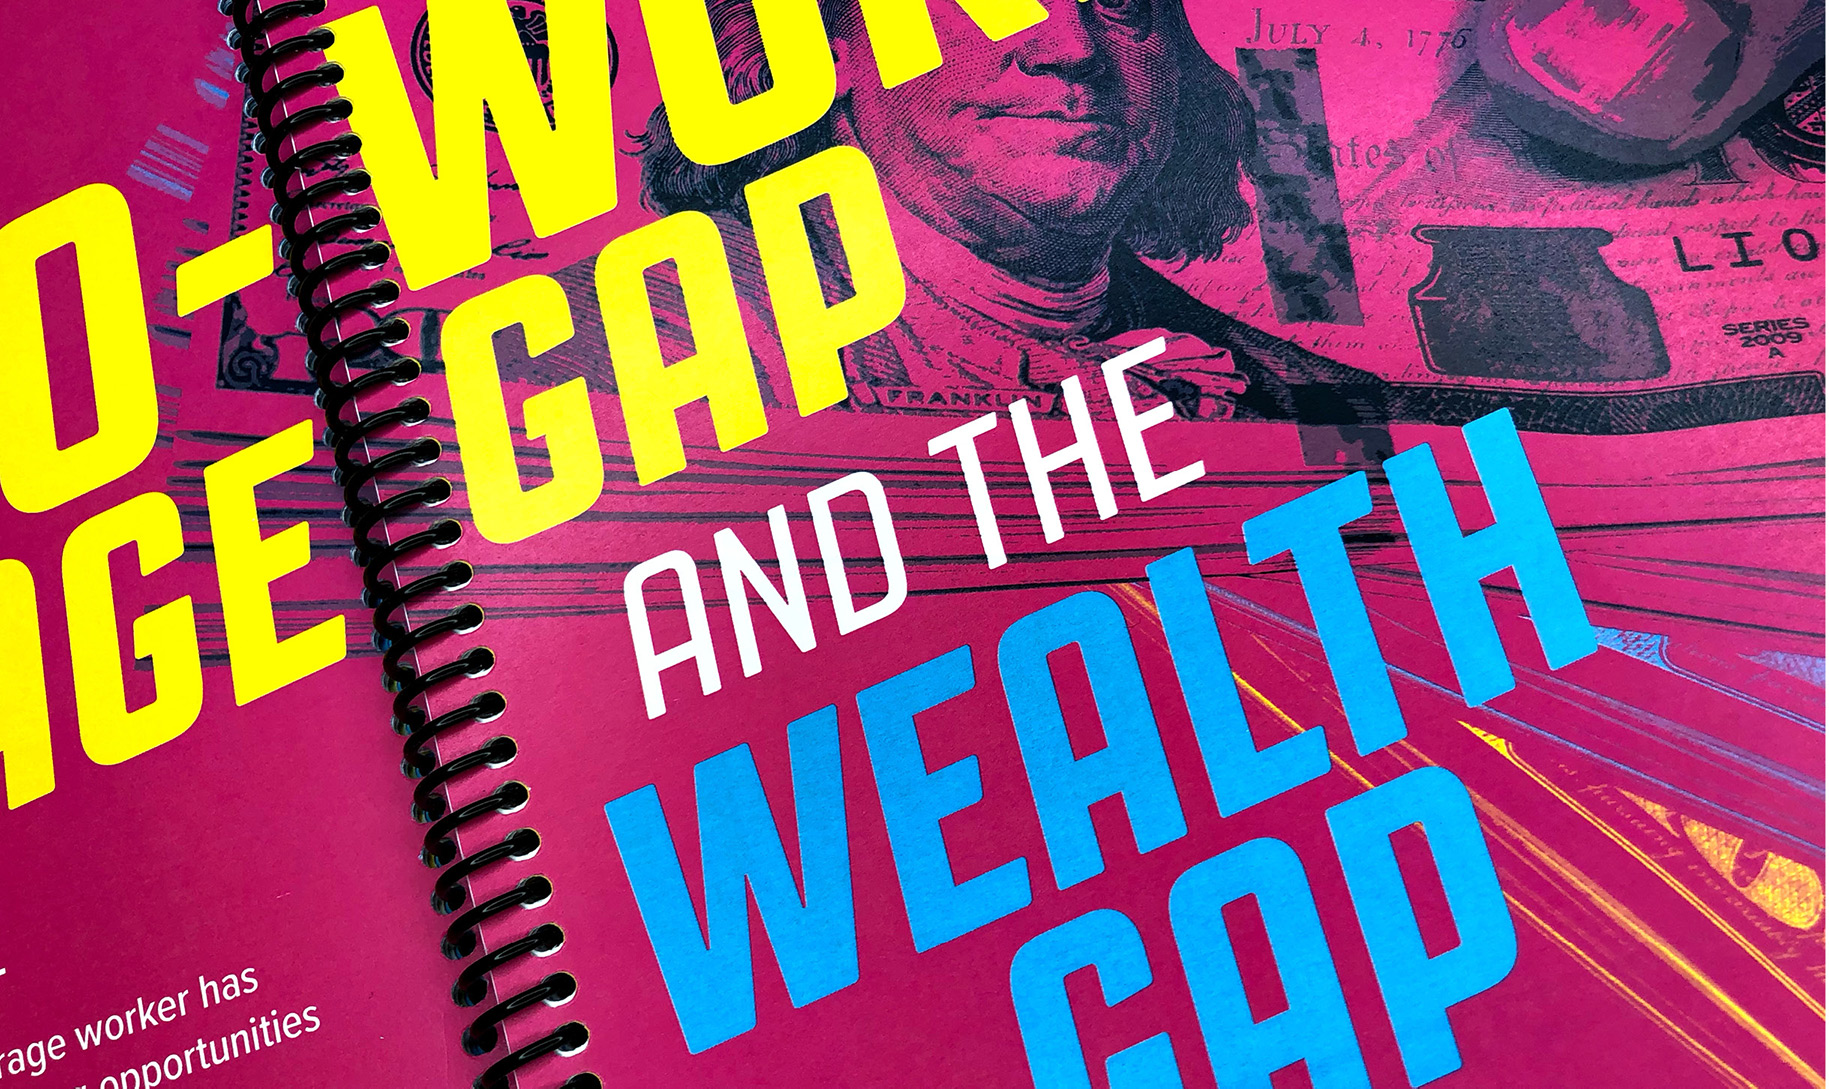 Close-up of book spread with photocollage expressing the wage gap